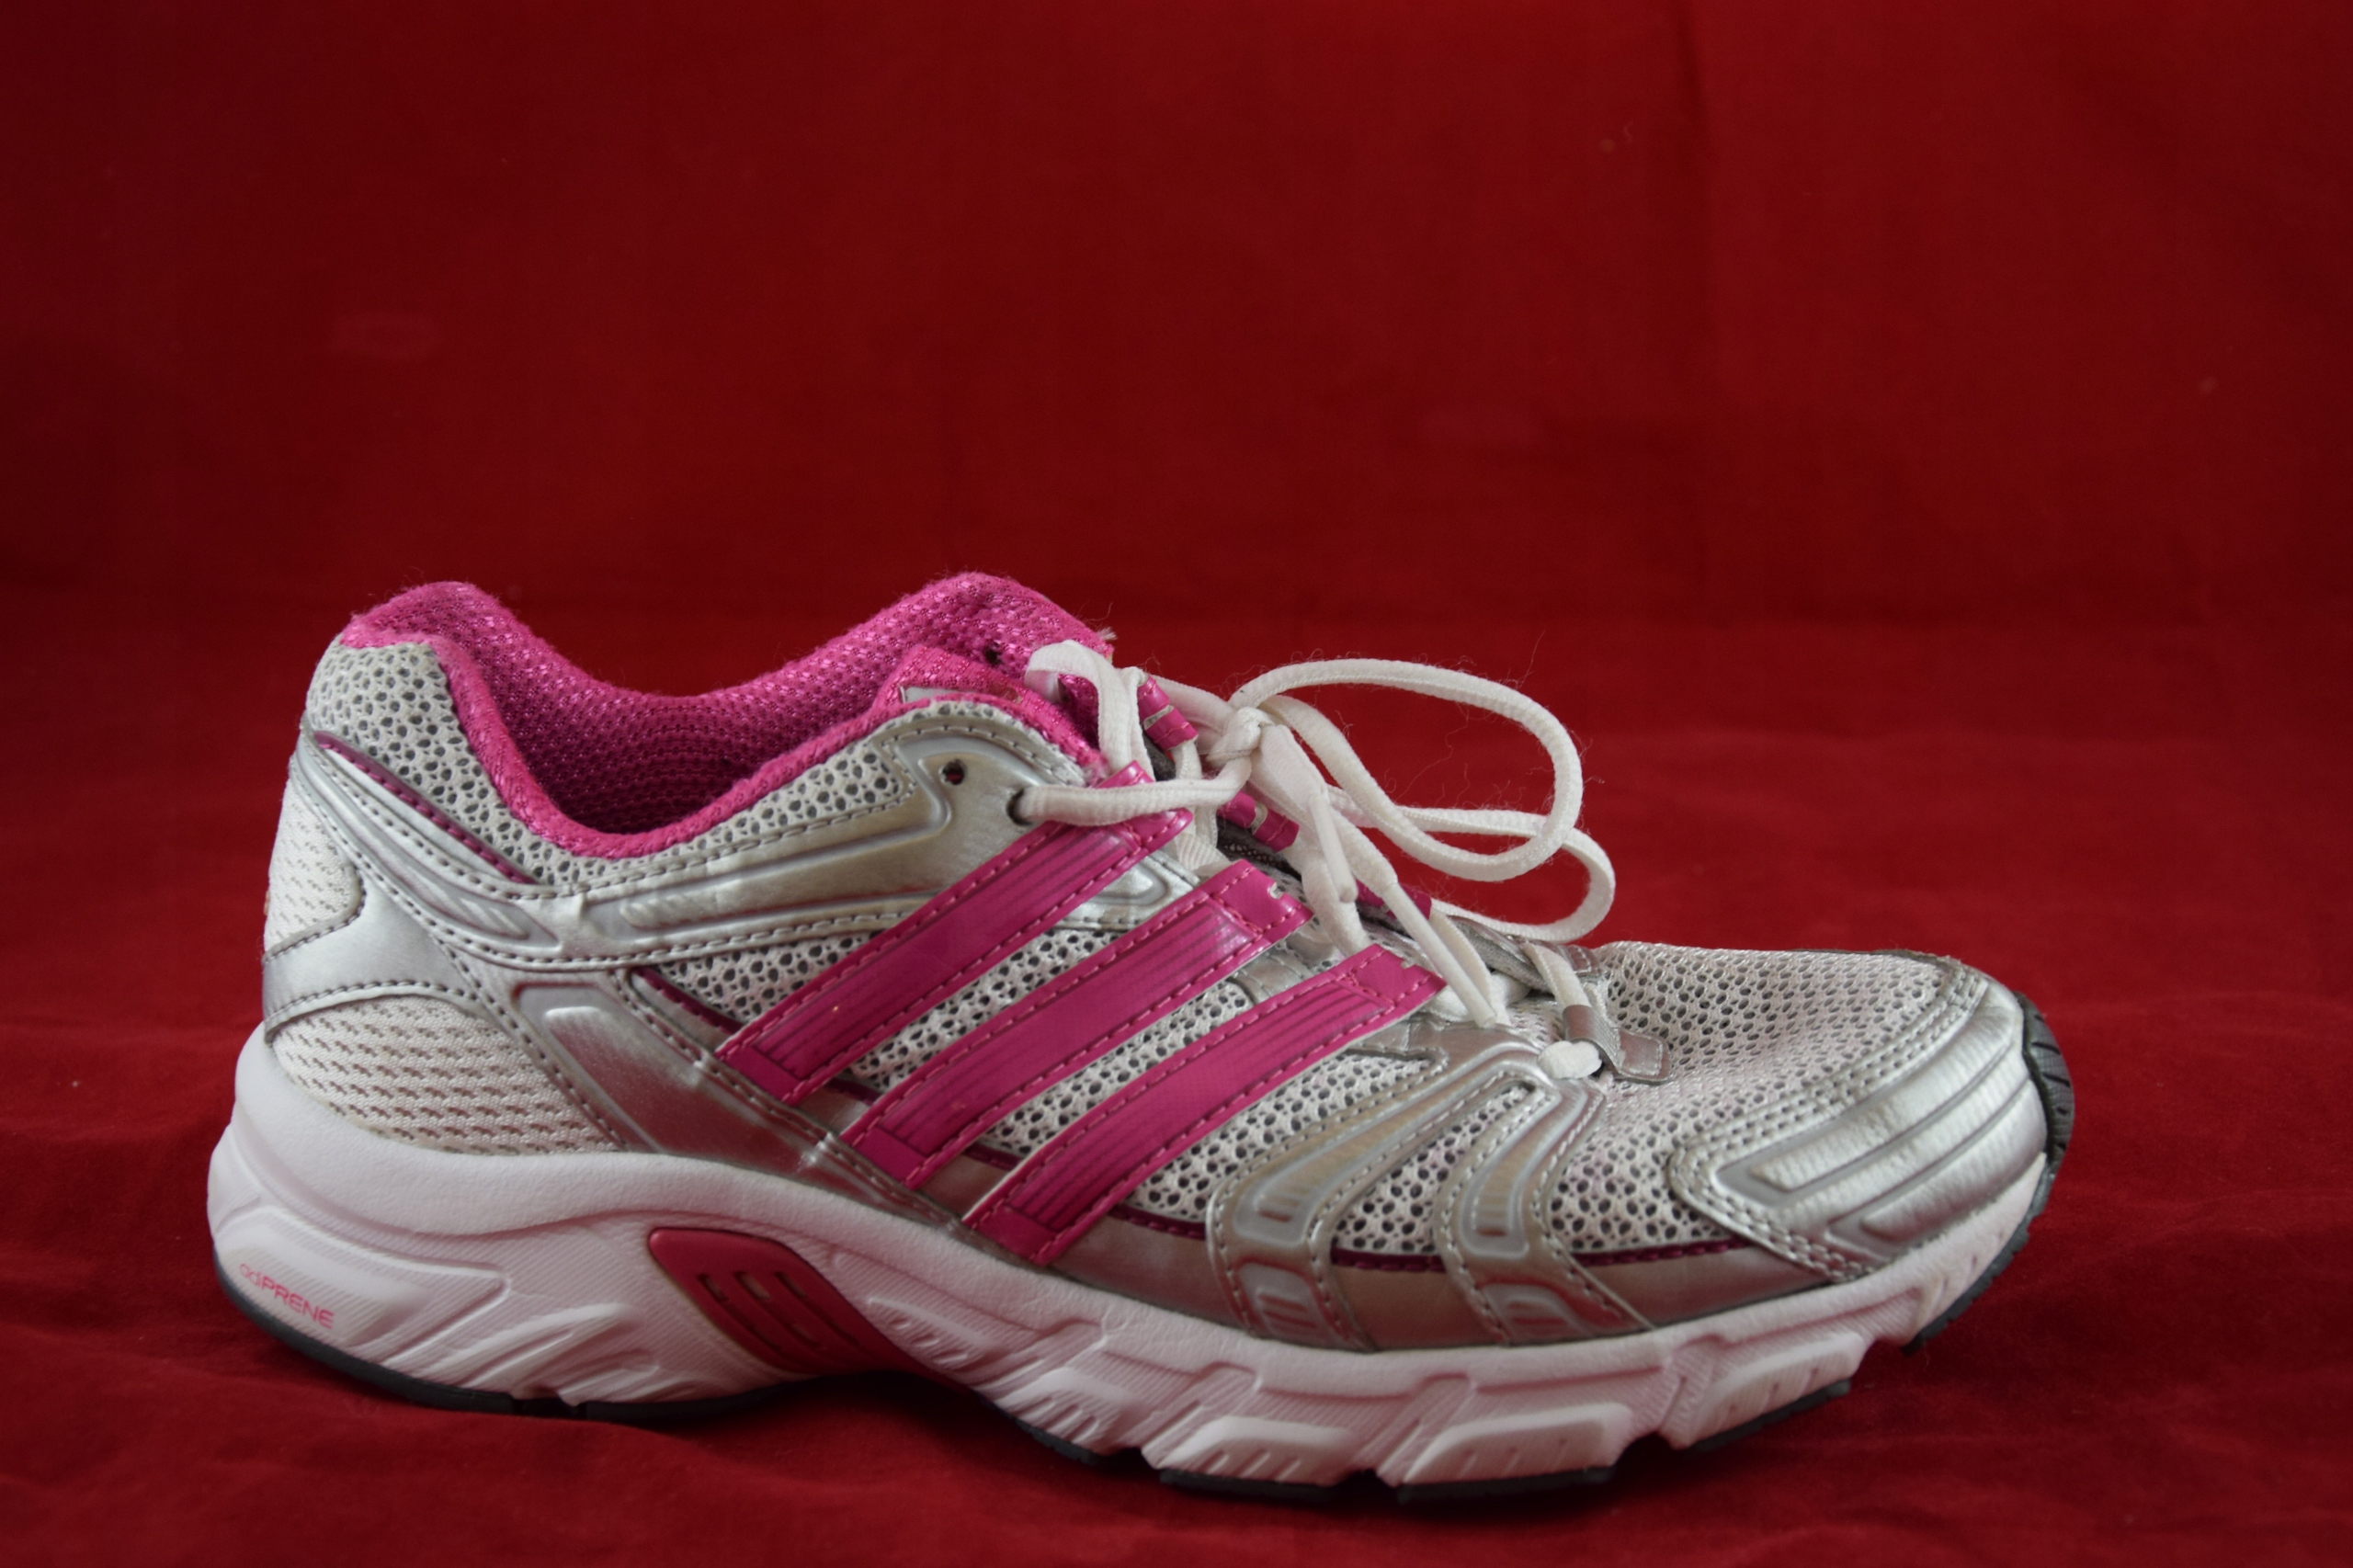 distinctive style superior performance temperament shoes BUTY ADIDAS PYV 702001 R.40 J.NEW